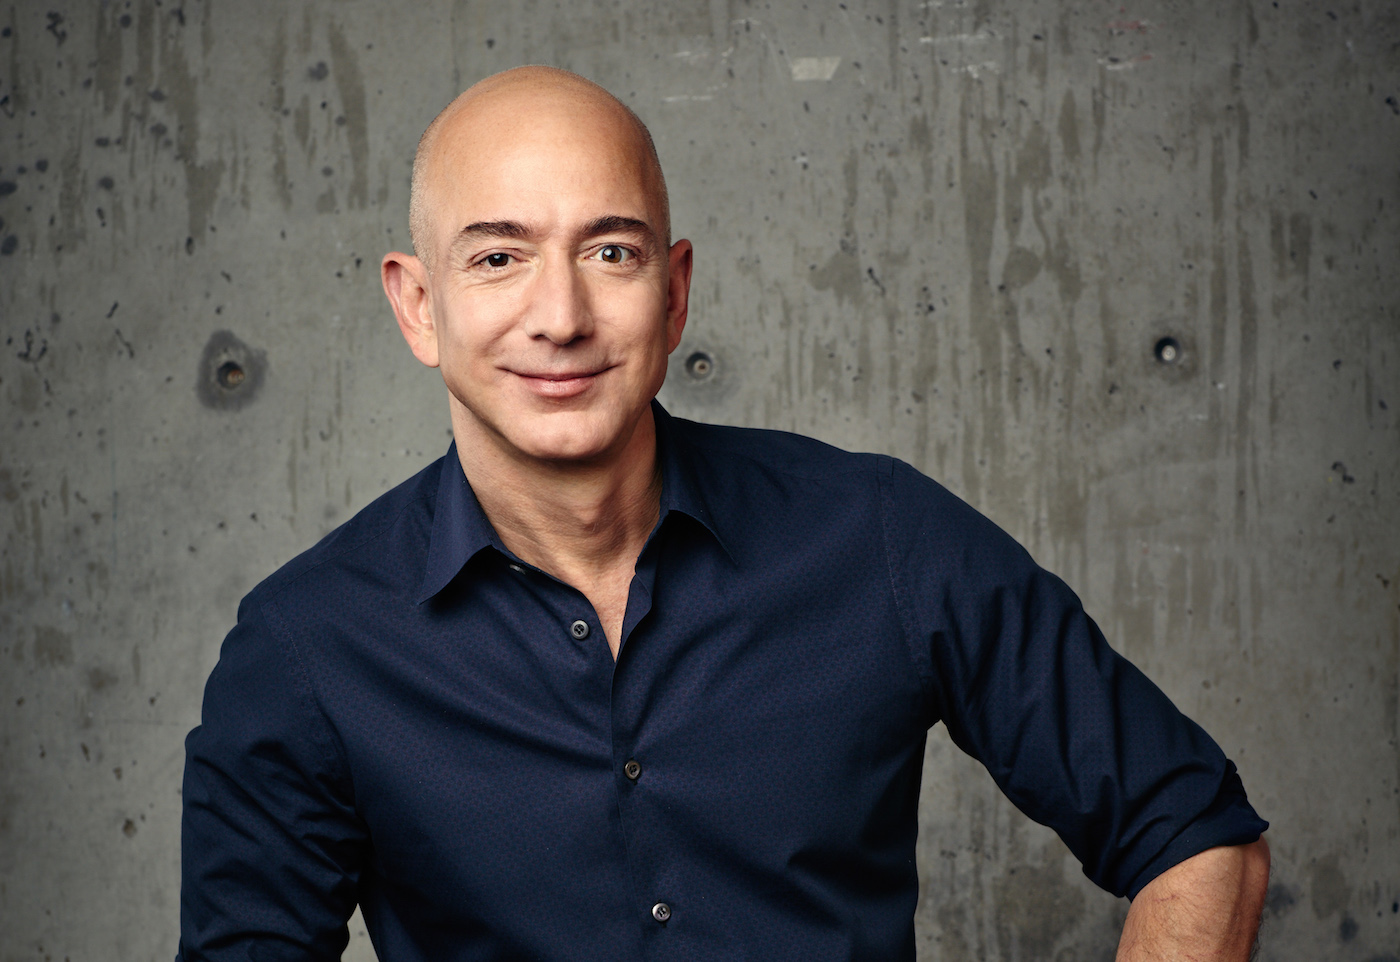 Jeff Bezos invests in UK startup: A case study in attracting dynamic investment